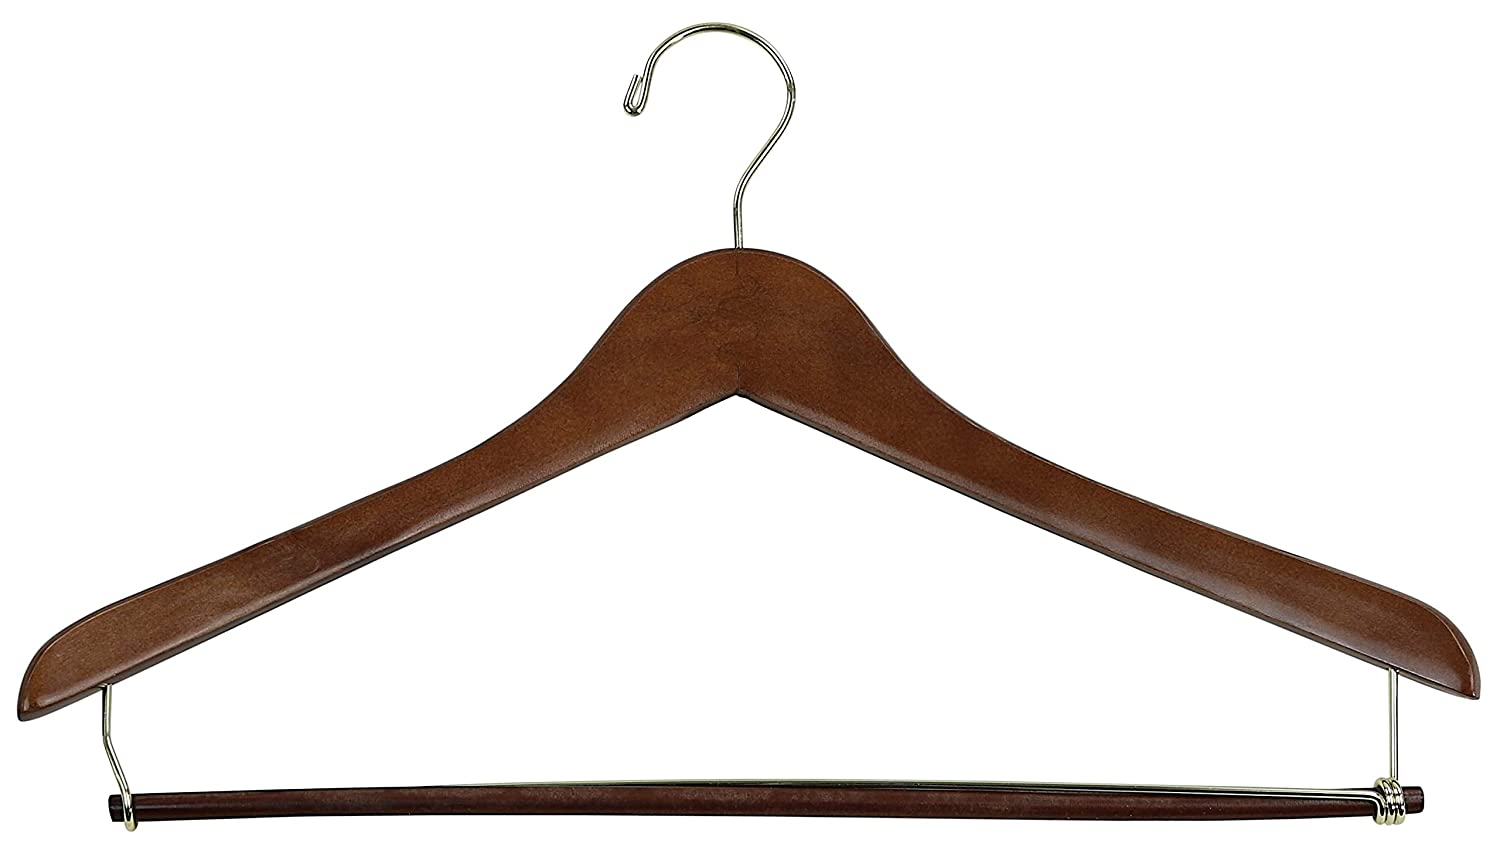 Iconikal 17-Inch Contoured Wood Suit Hanger with Pant Bar 10-Pack Walnut